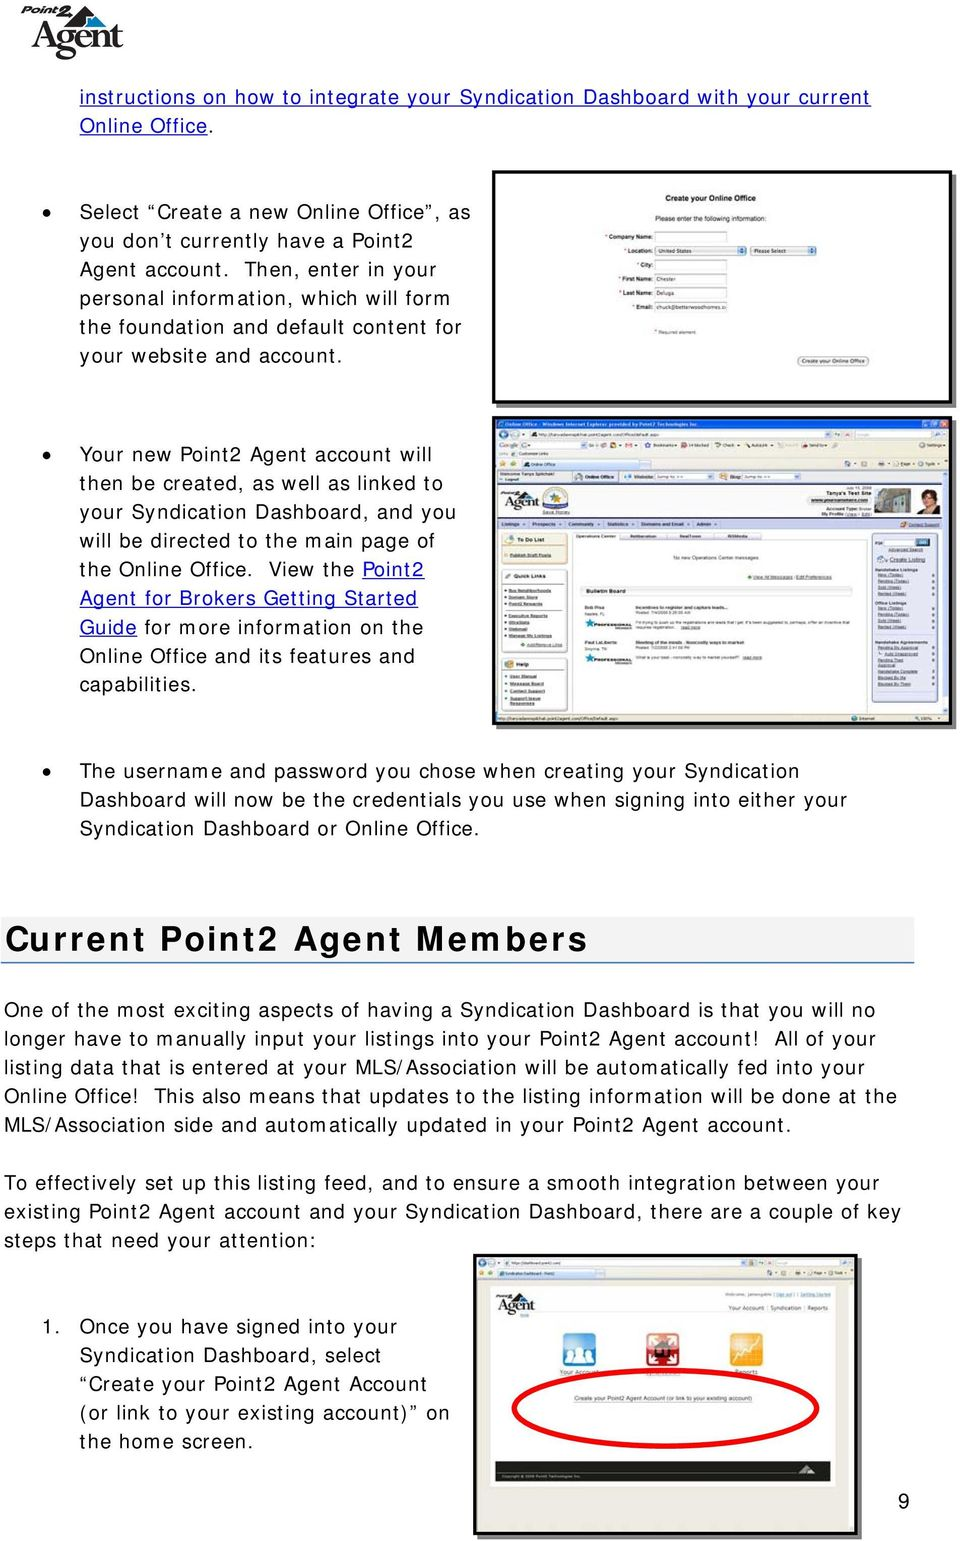 Your new Point2 Agent account will then be created, as well as linked to your Syndication Dashboard, and you will be directed to the main page of the Online Office.